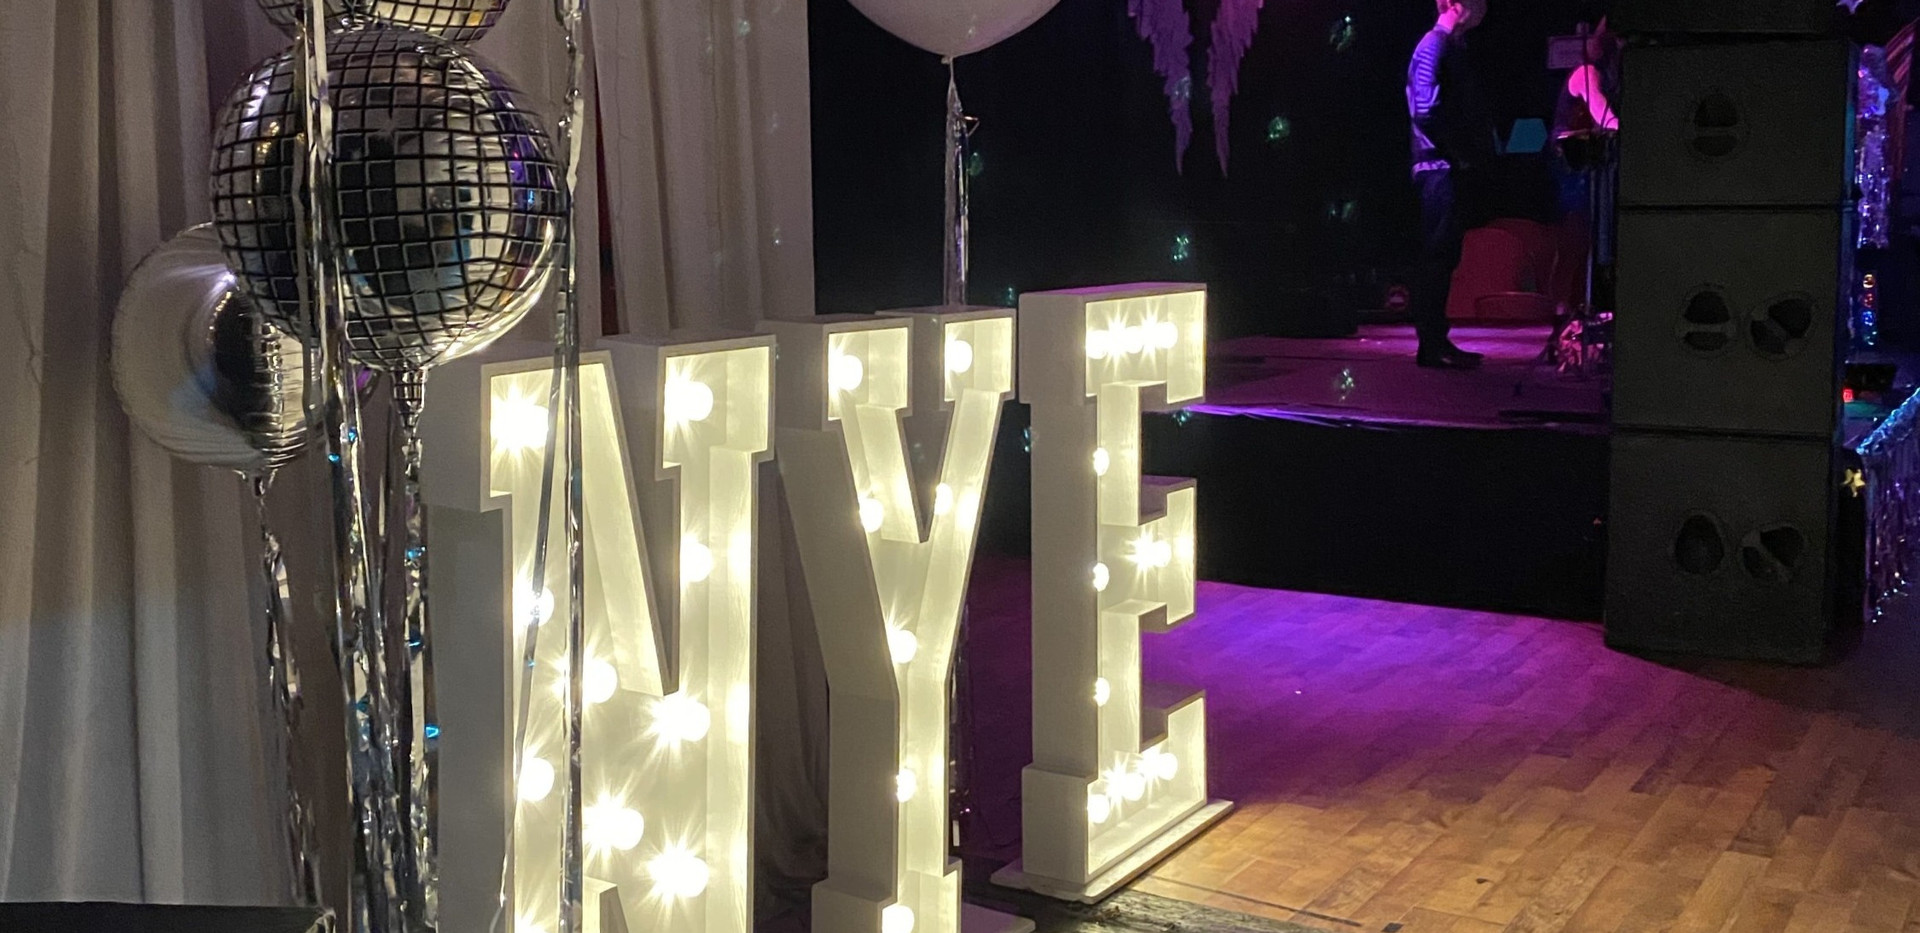 LED nye light up letters